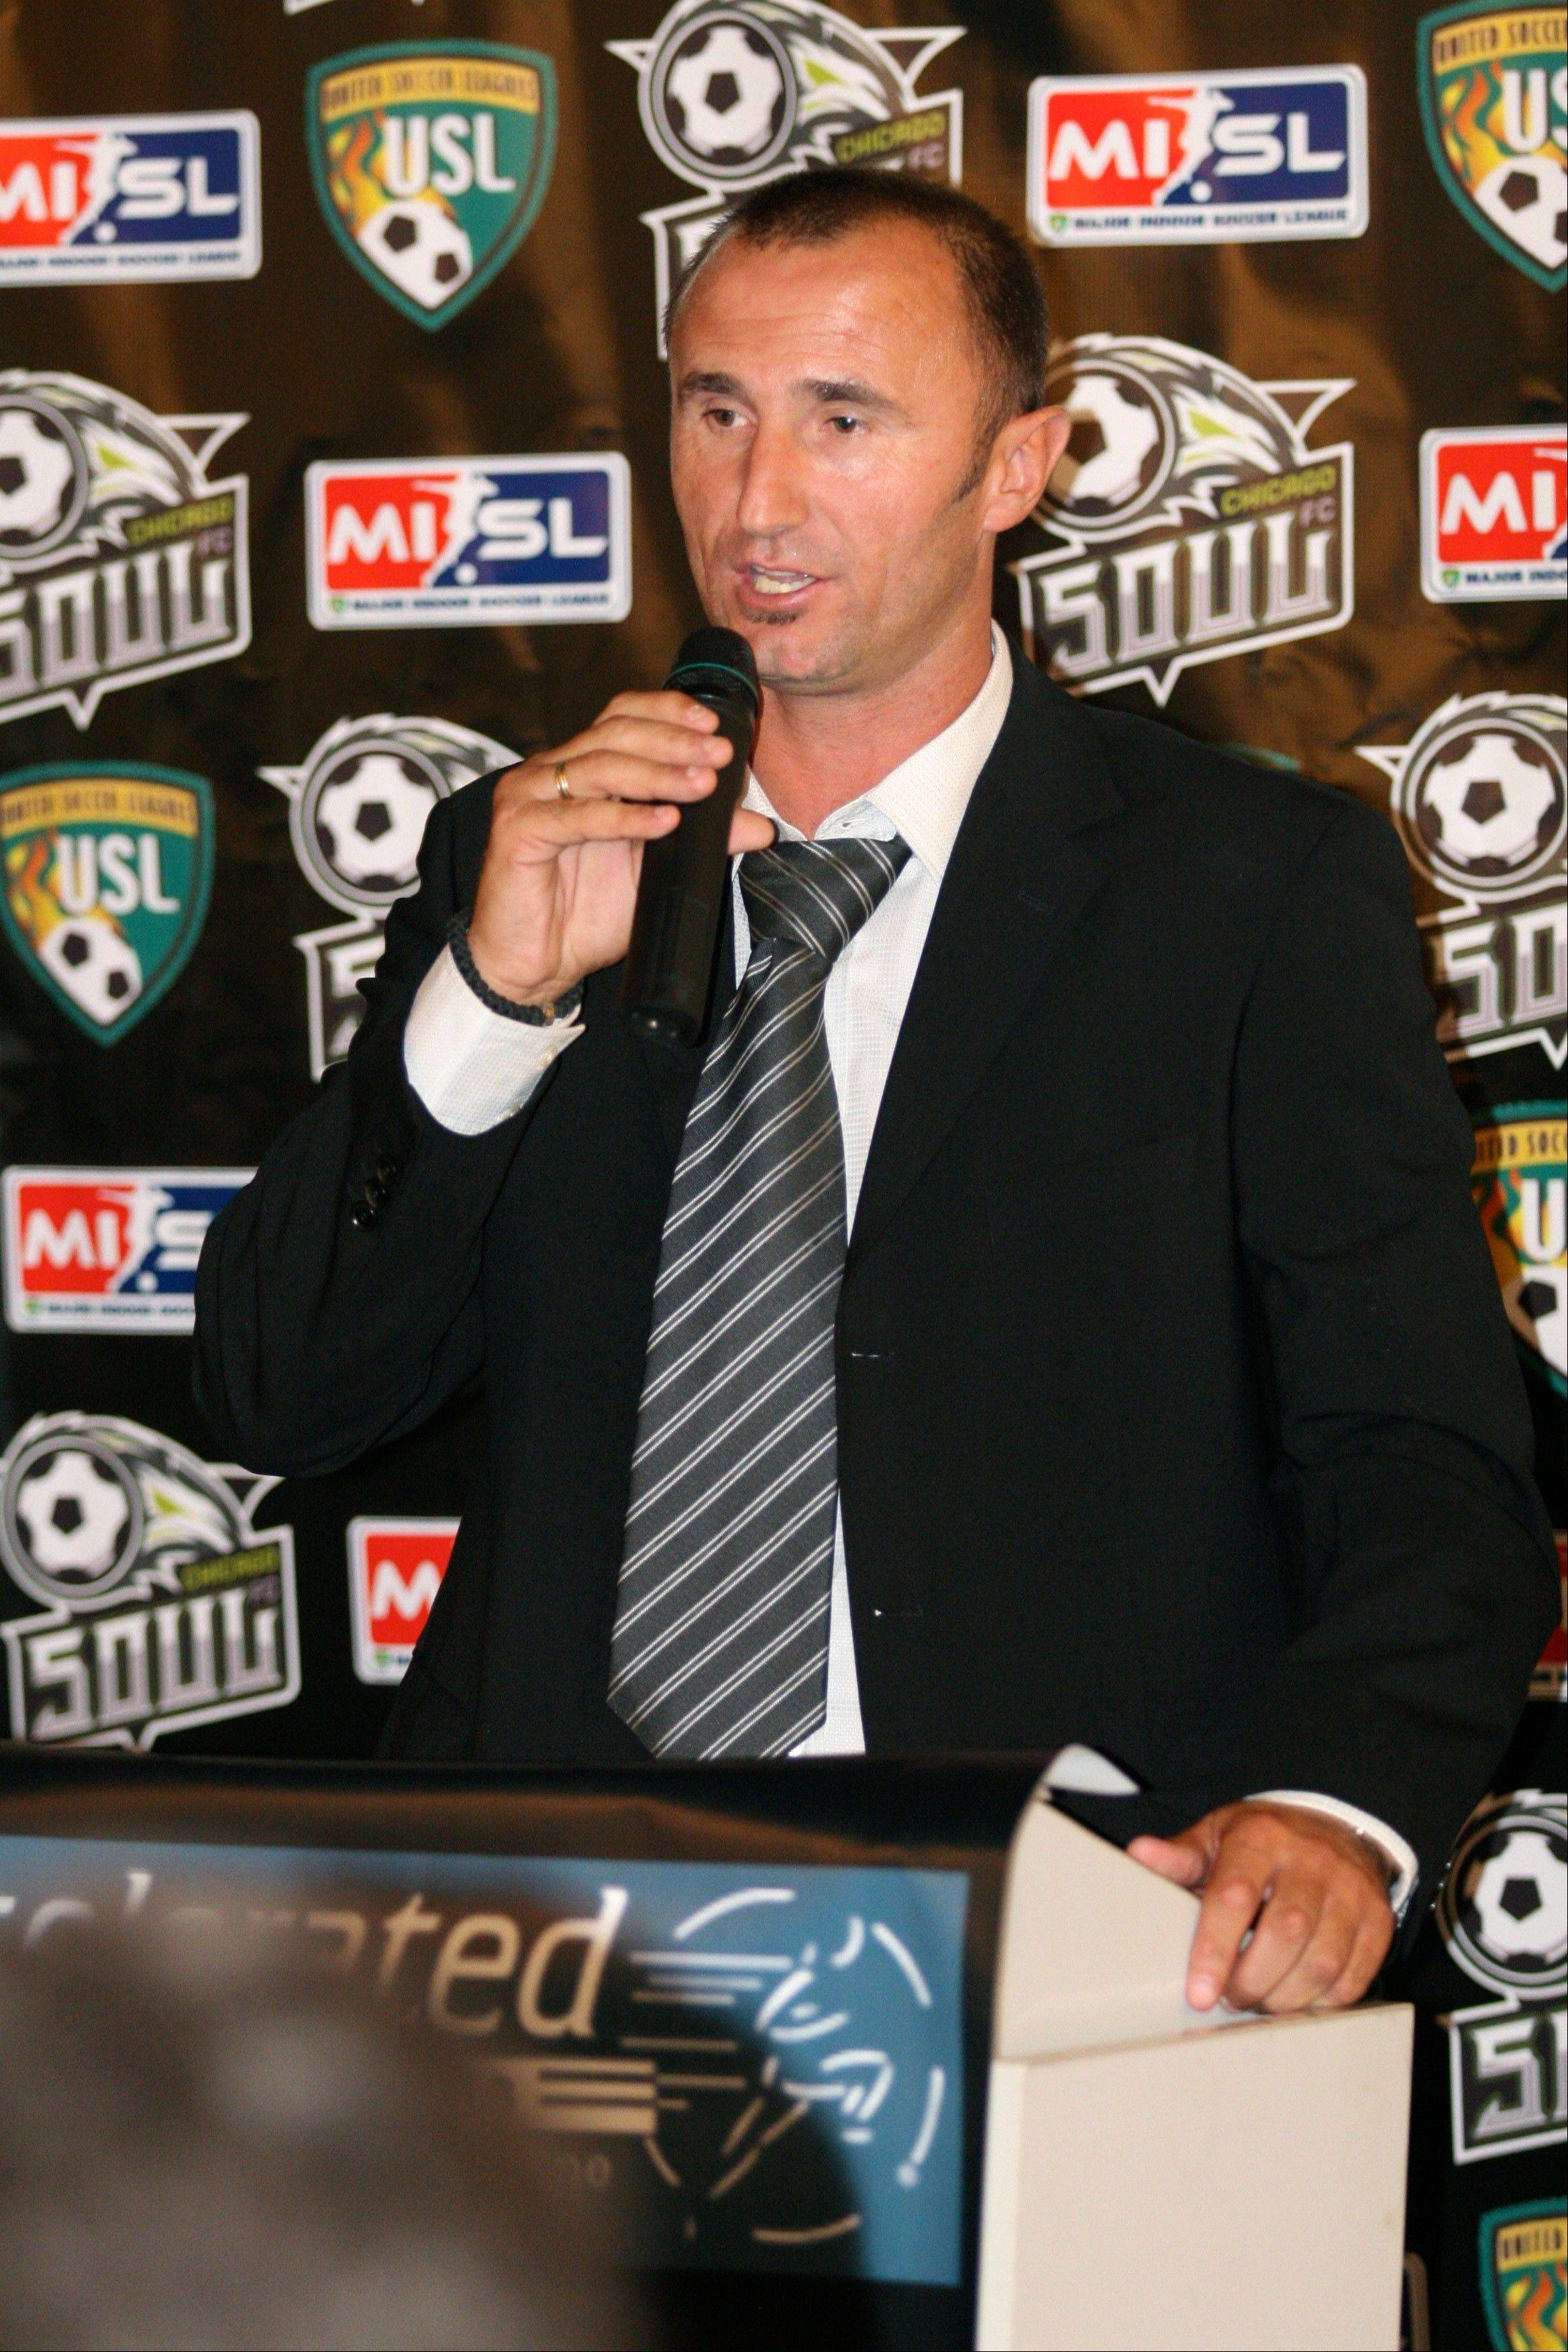 MISL veteran Novi Marojevic will take over the head coaching duties for the Chicago Soul, the professional indoor soccer club in its first season at the Sears Centre.